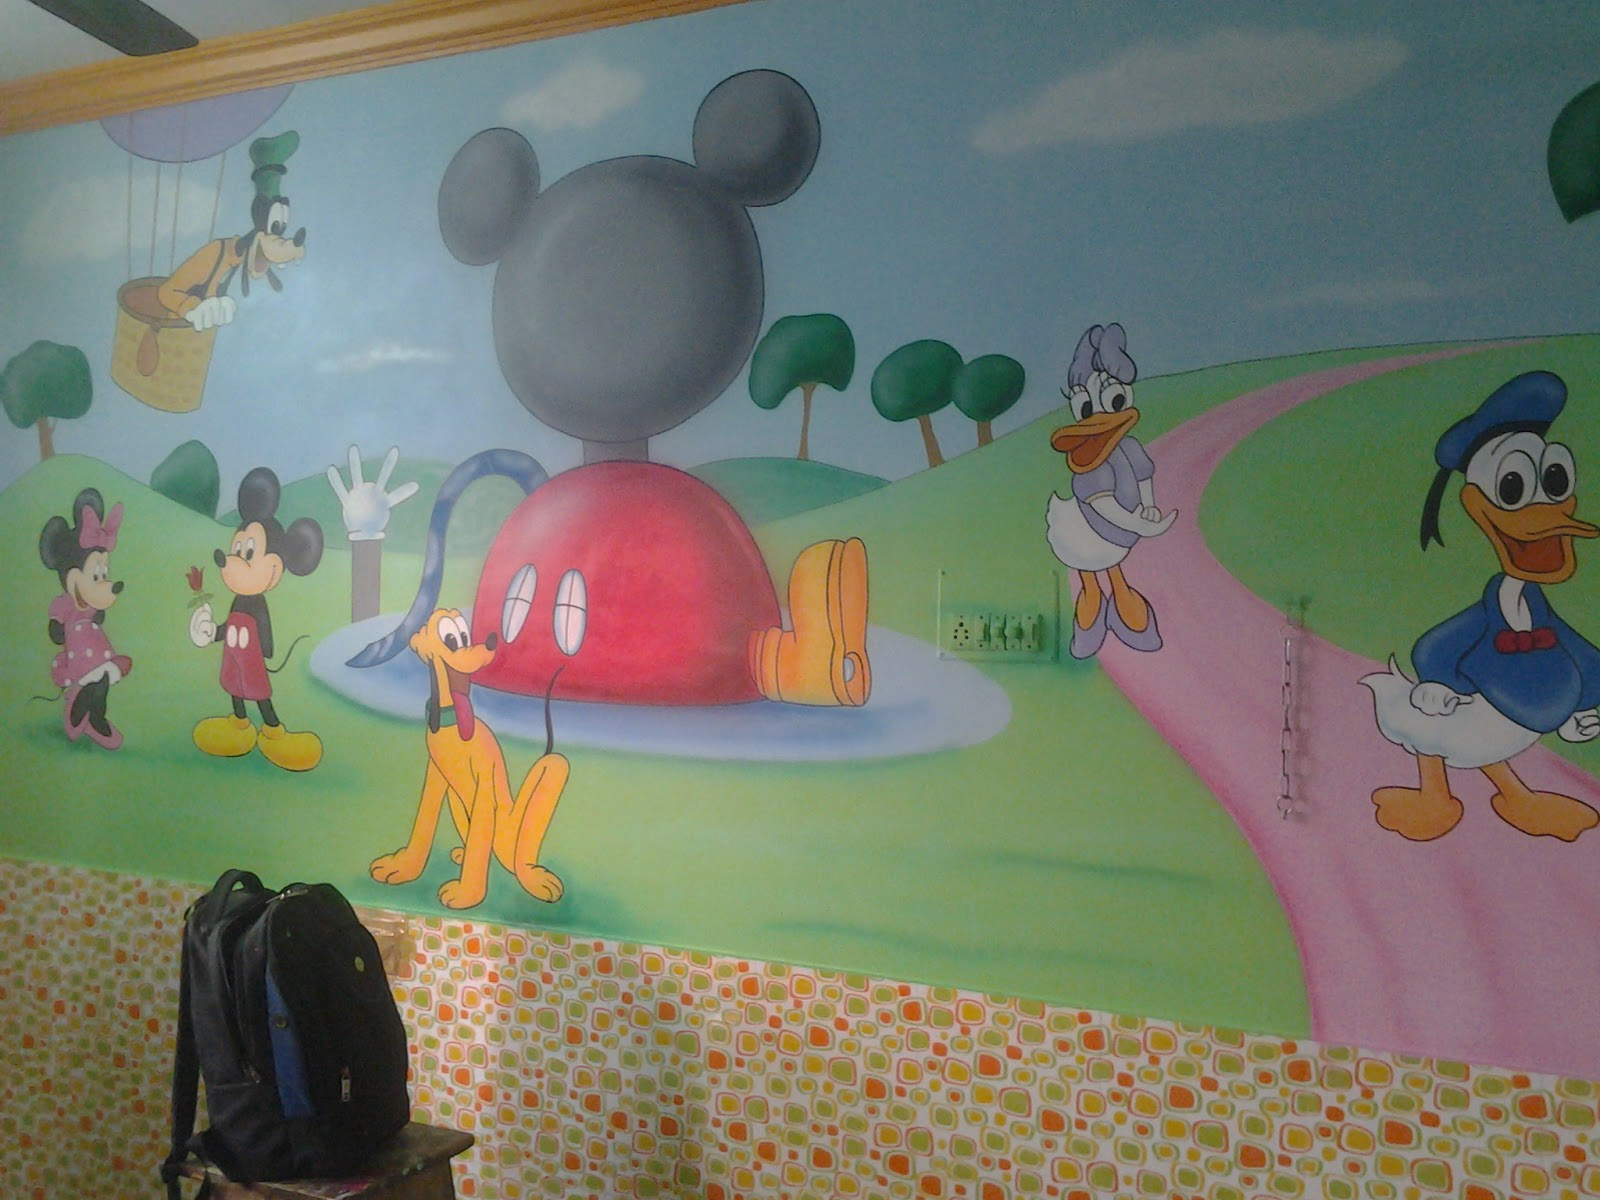 playschool wall painting mumbai kids room wall painting ahmadabad we make fully customized handmade wall murals dor kids room please contact 91 922 168 6556 or visit www wallpaintingmumbai in